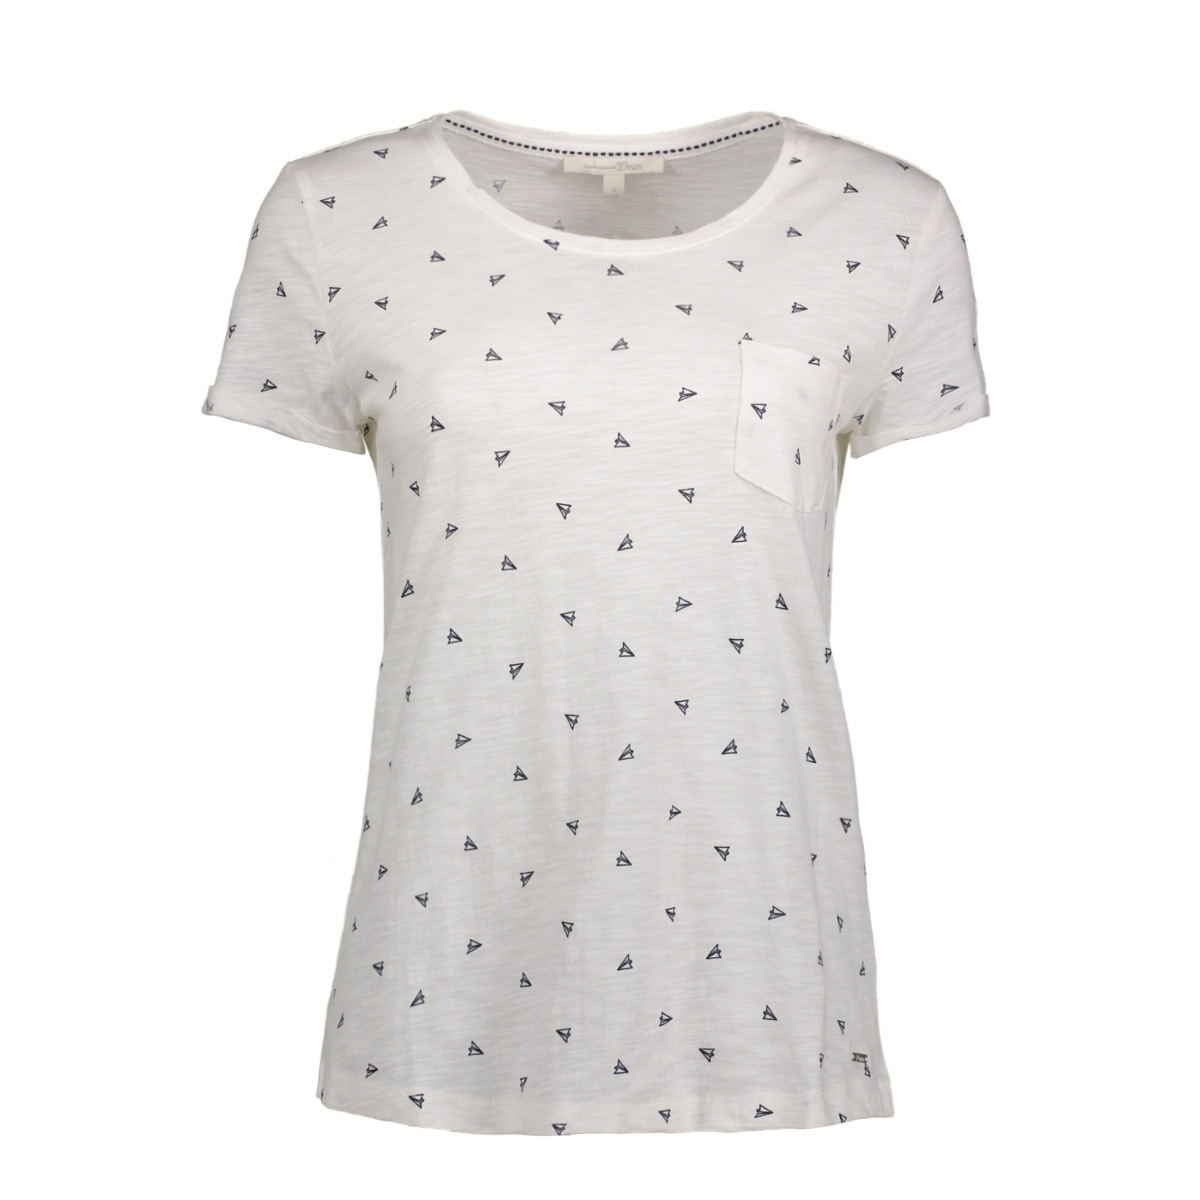 Tom tailor t shirt 8003 for Tailored t shirts online